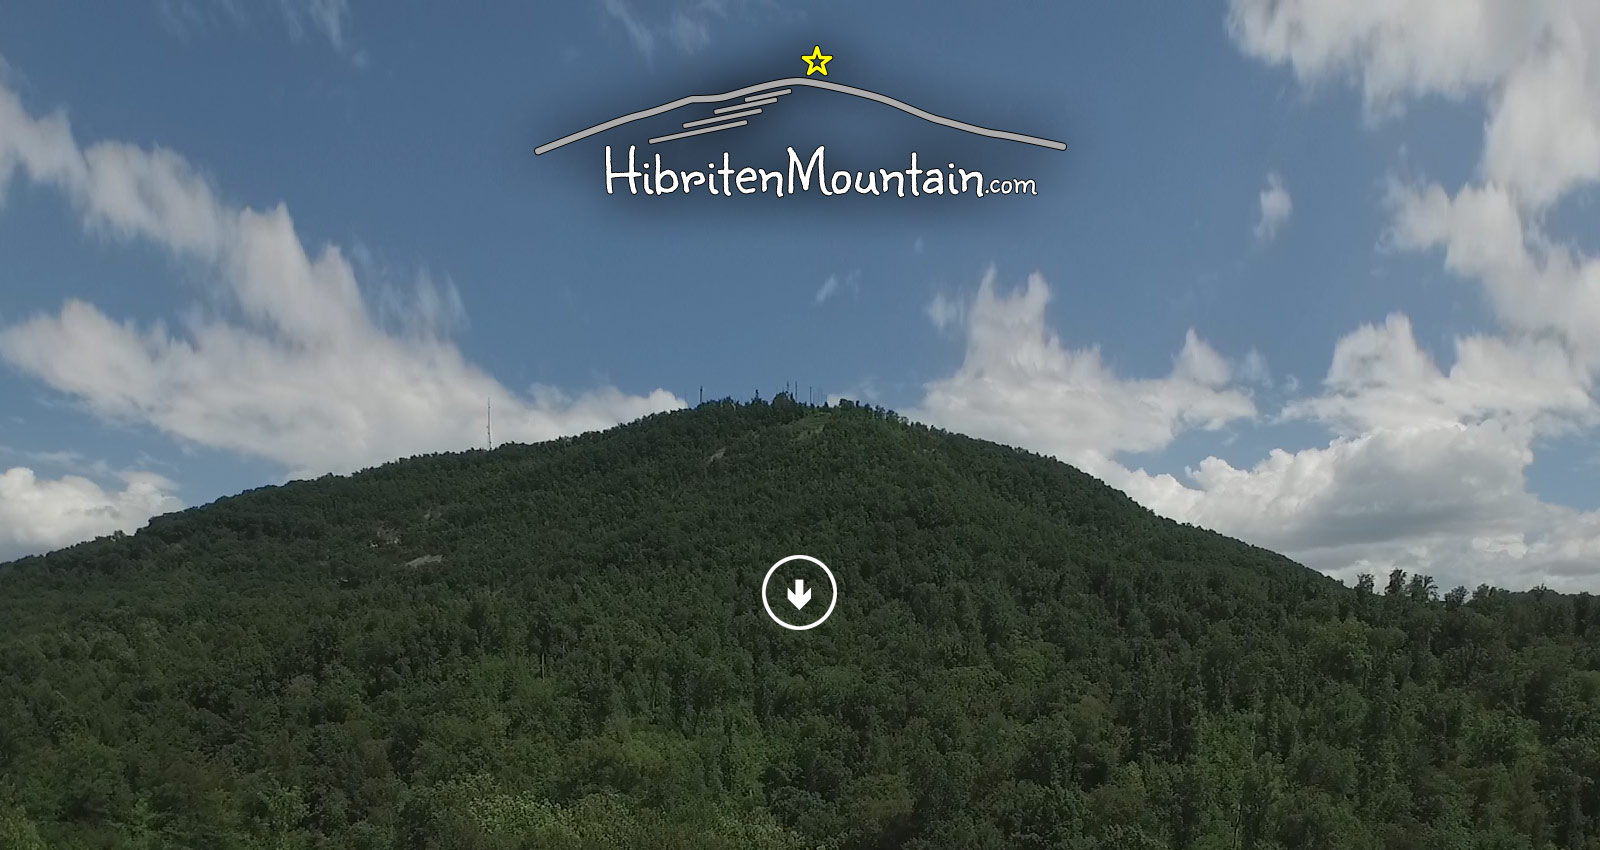 hibriten-mountain-home-page-003